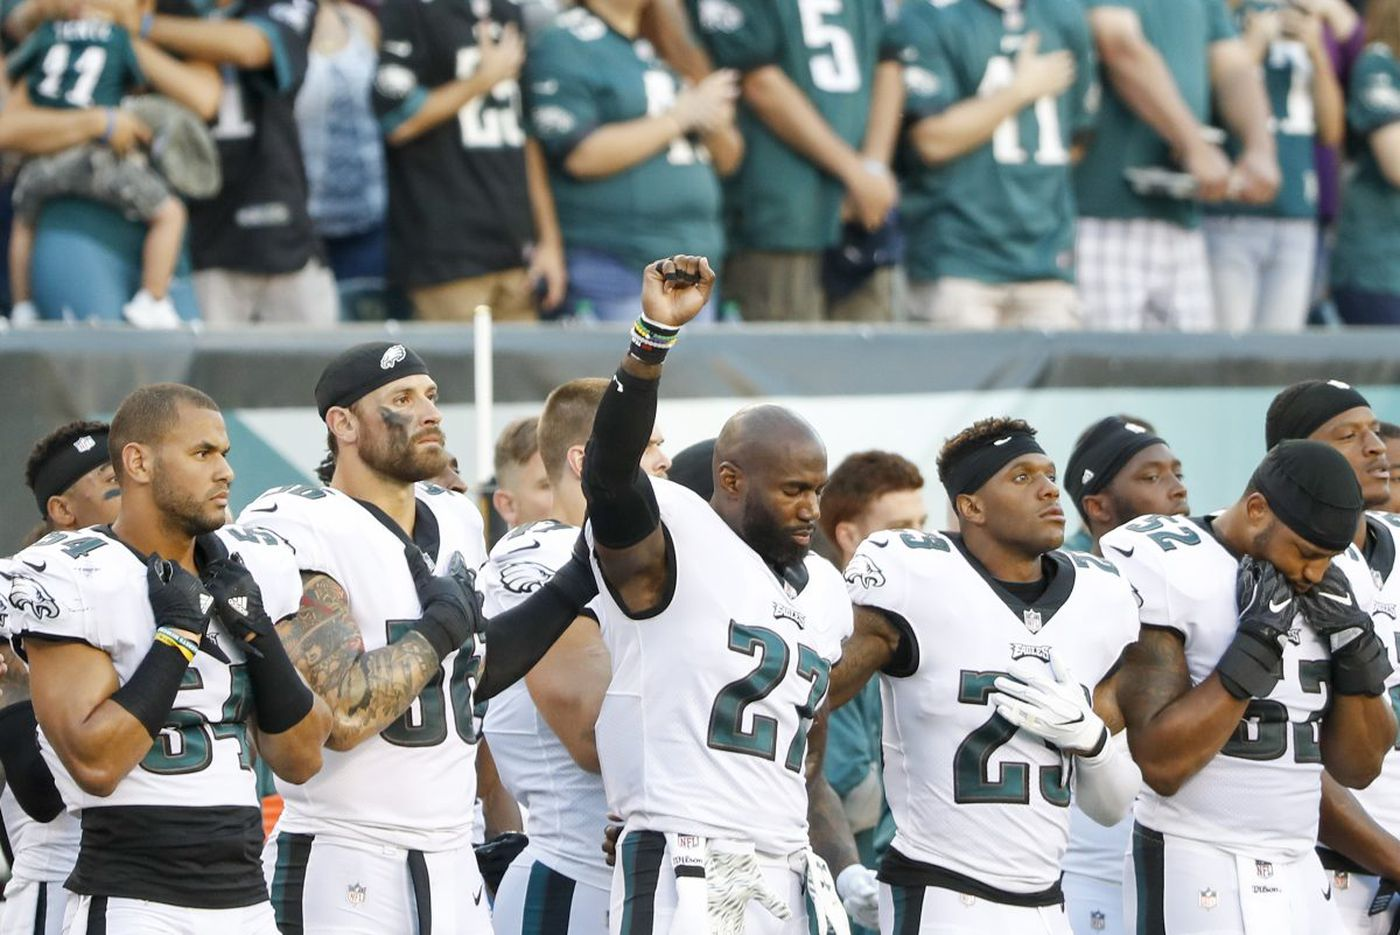 NFL anthem policy change: what they're saying around the league